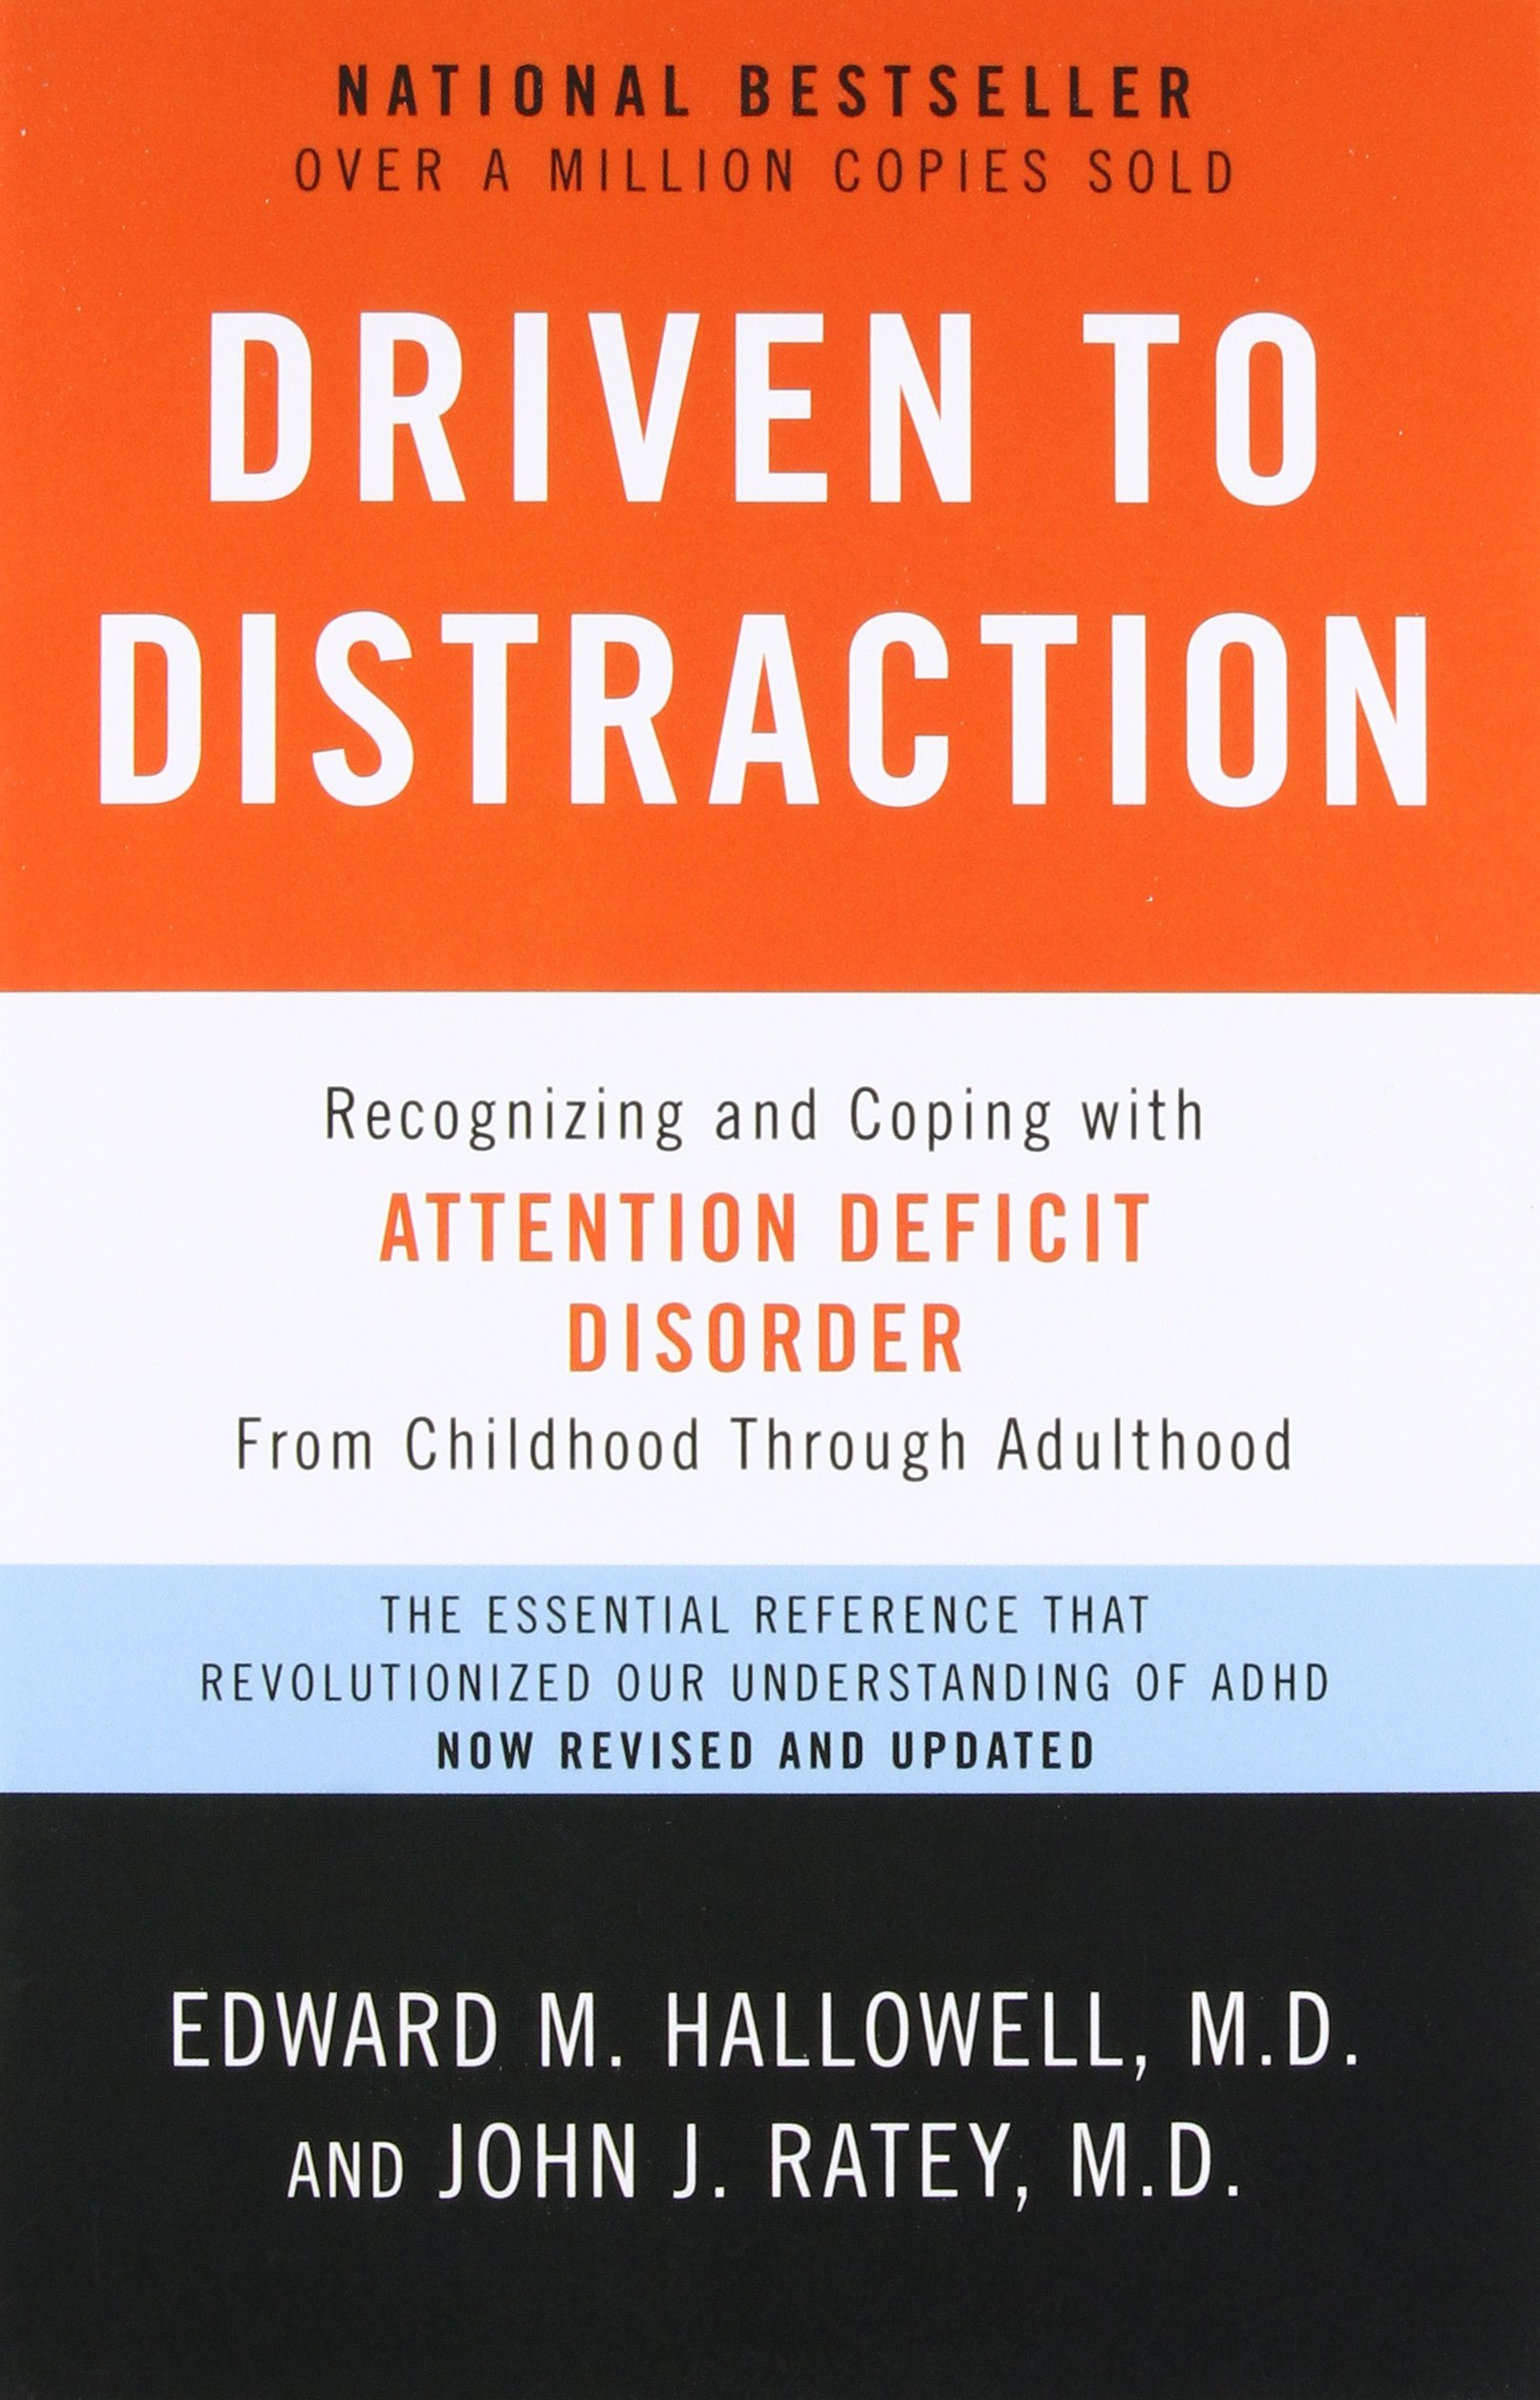 Important Coping Strategies for Attention Deficit Disorder Sufferers